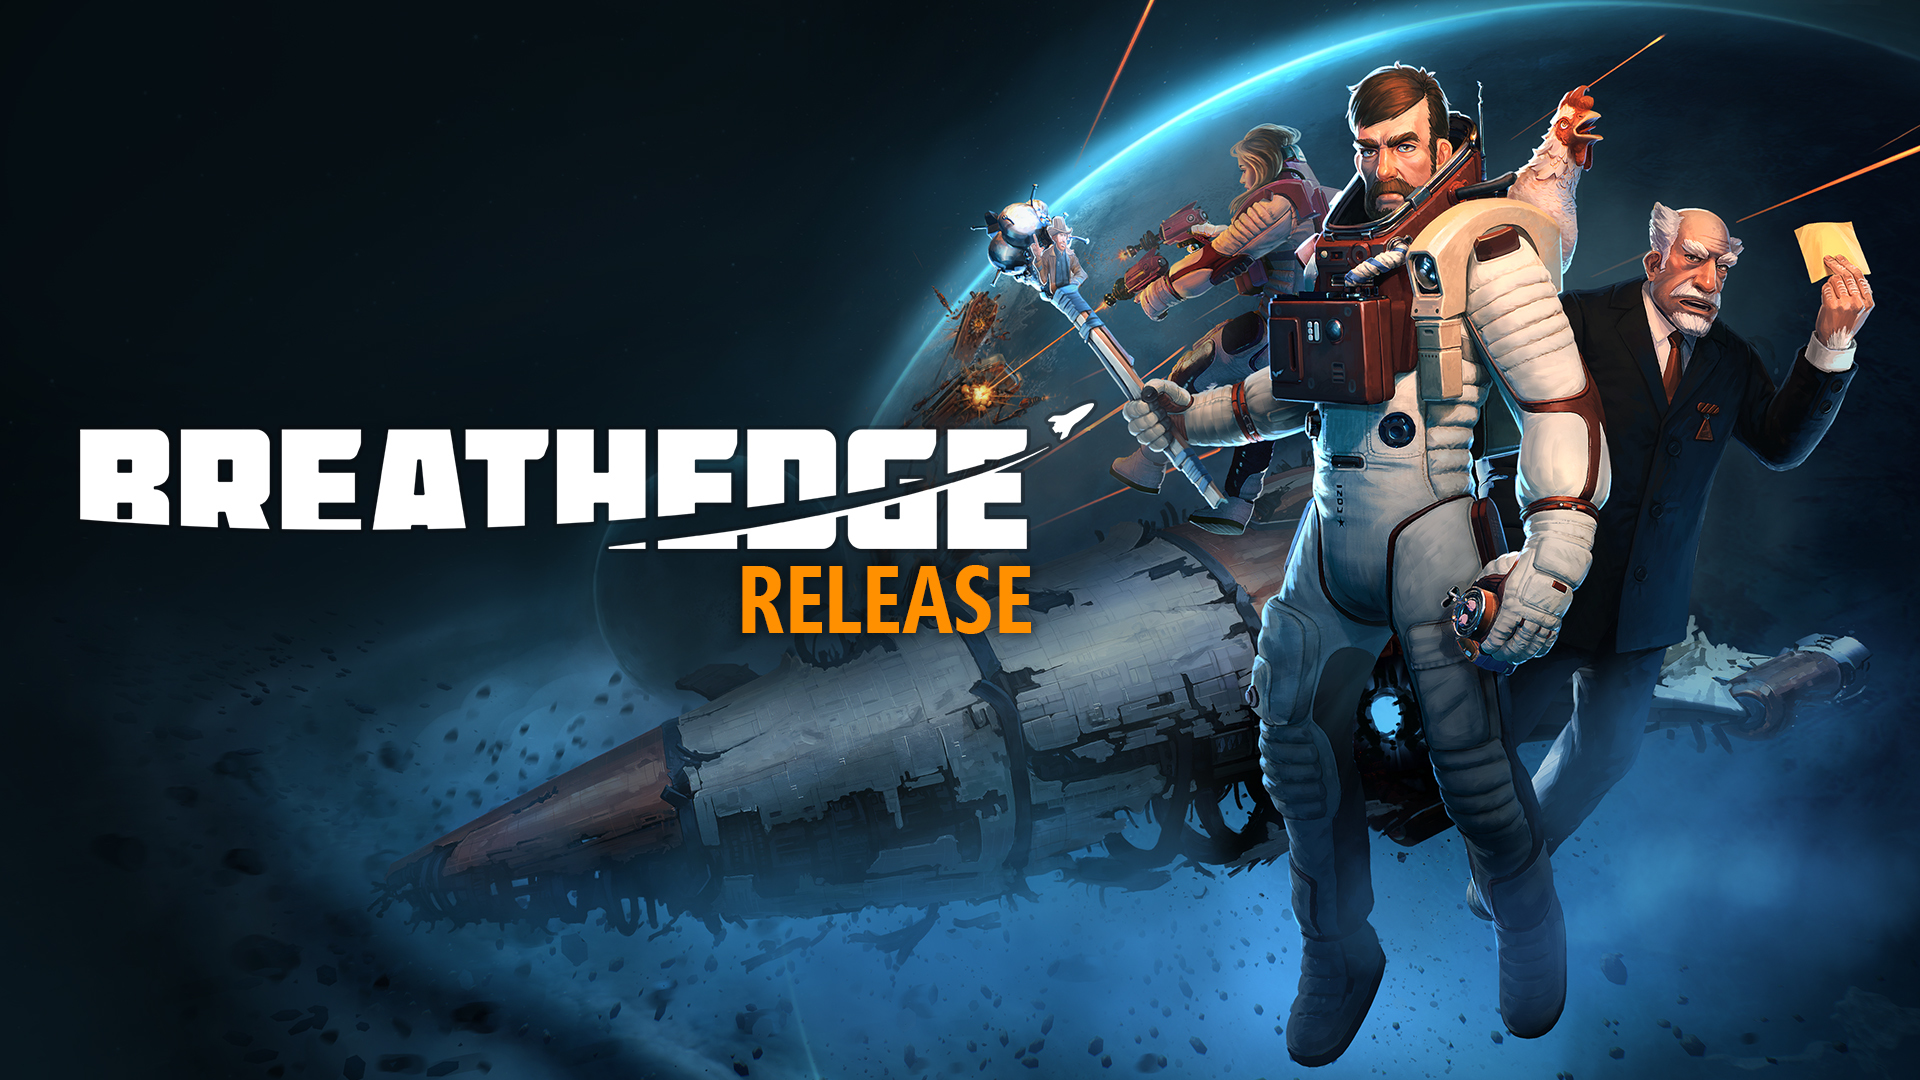 Breathedge - The Release! - Steam News